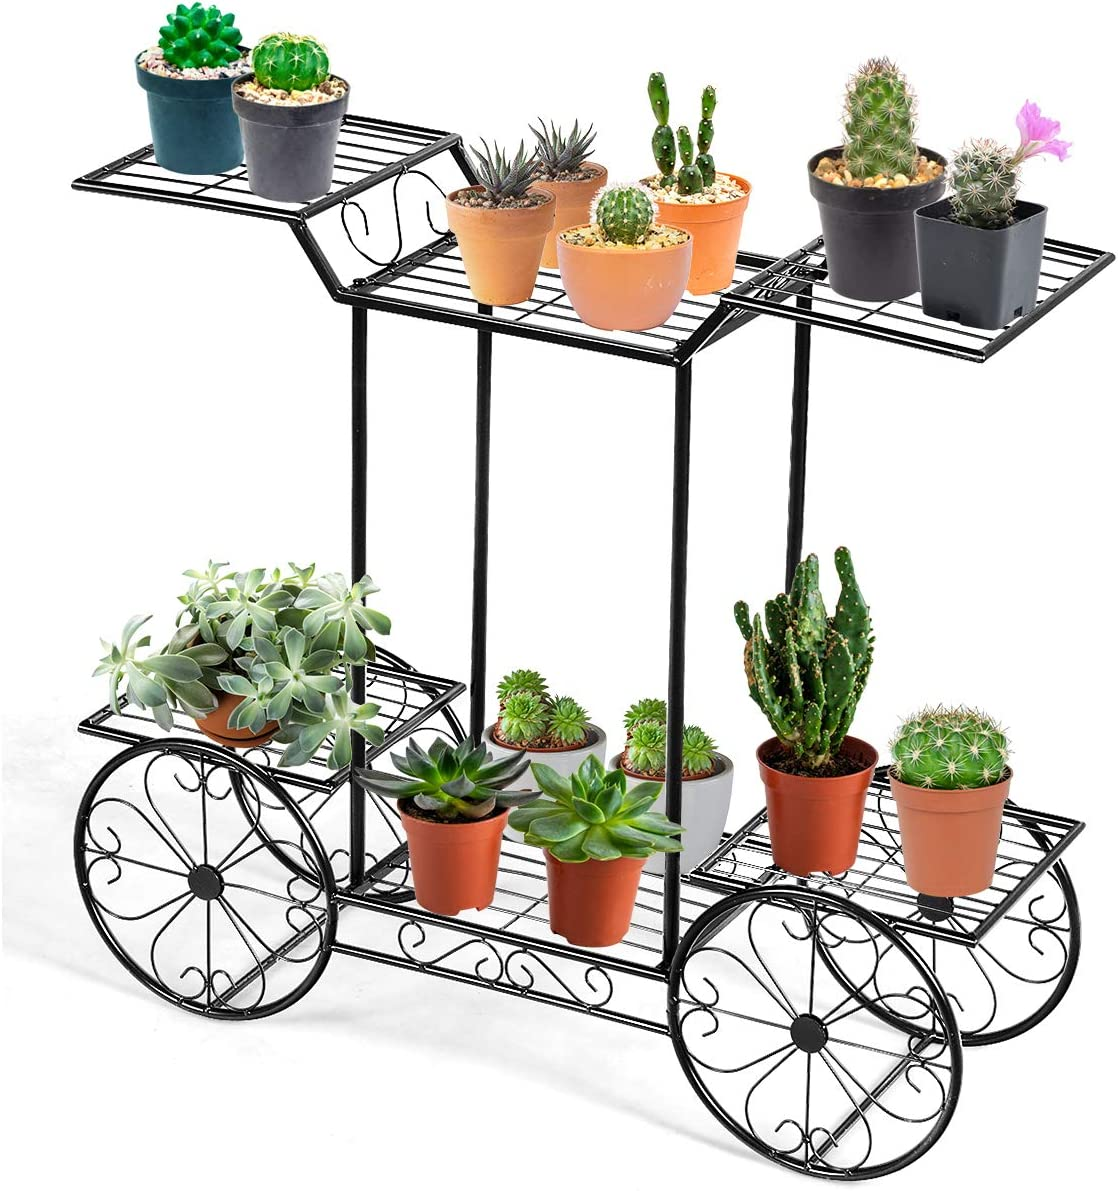 Giantex Garden Cart Metal Plant Stand with 4 Decorative Wheels, Succulent Collection Flower Pot Holder Display Shelf for Home Patio Garden Flower Shop, Parisian Style Plant Potted Rack (6-Tier)